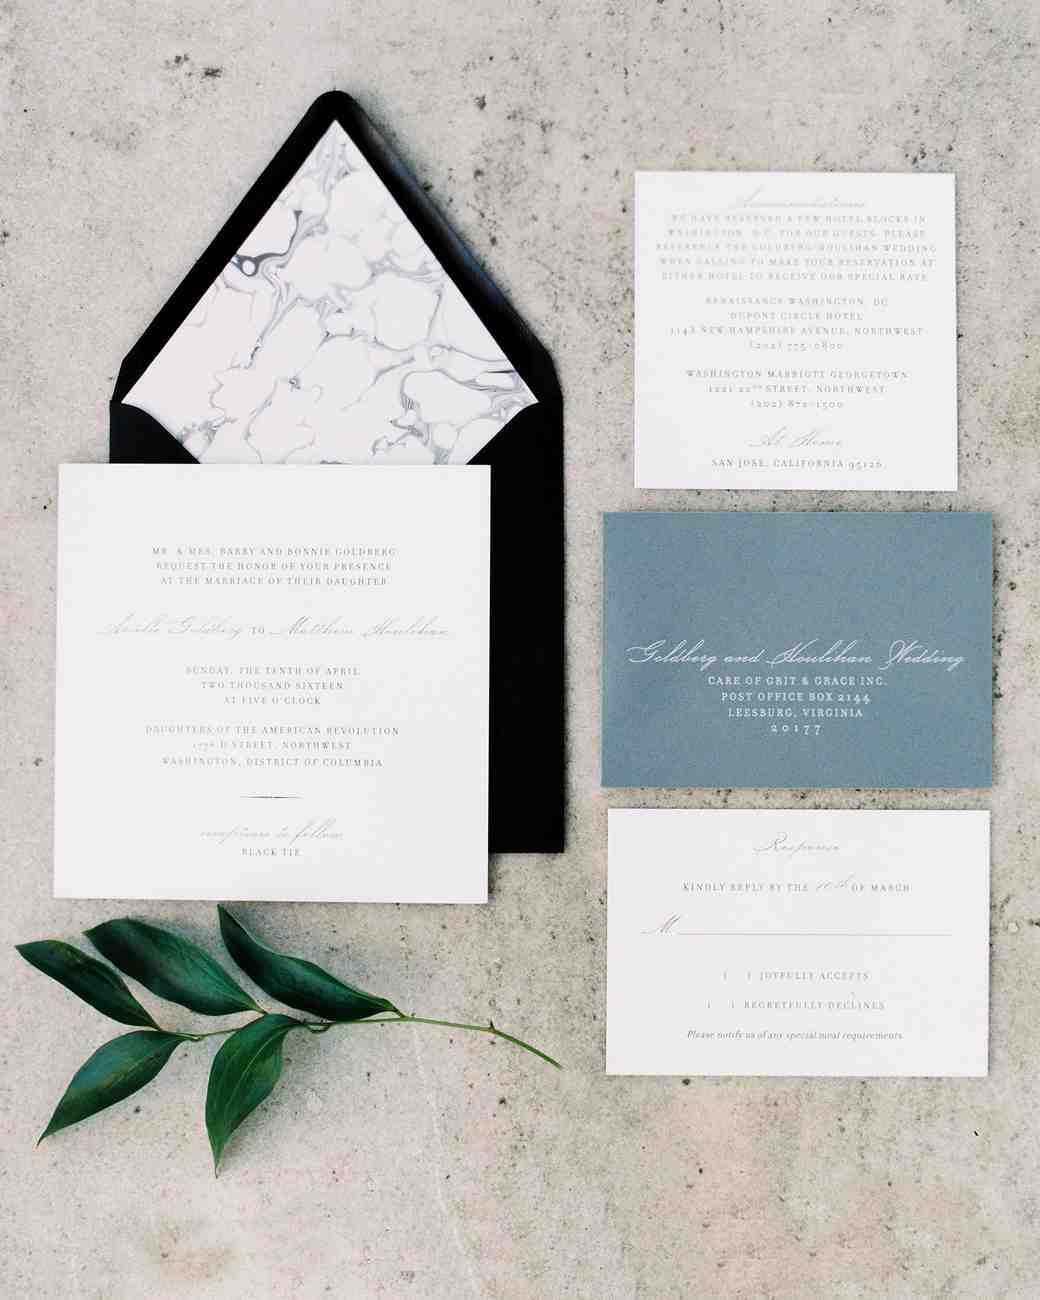 arielle-matt-wedding-invite-1-6134241-0716.jpg